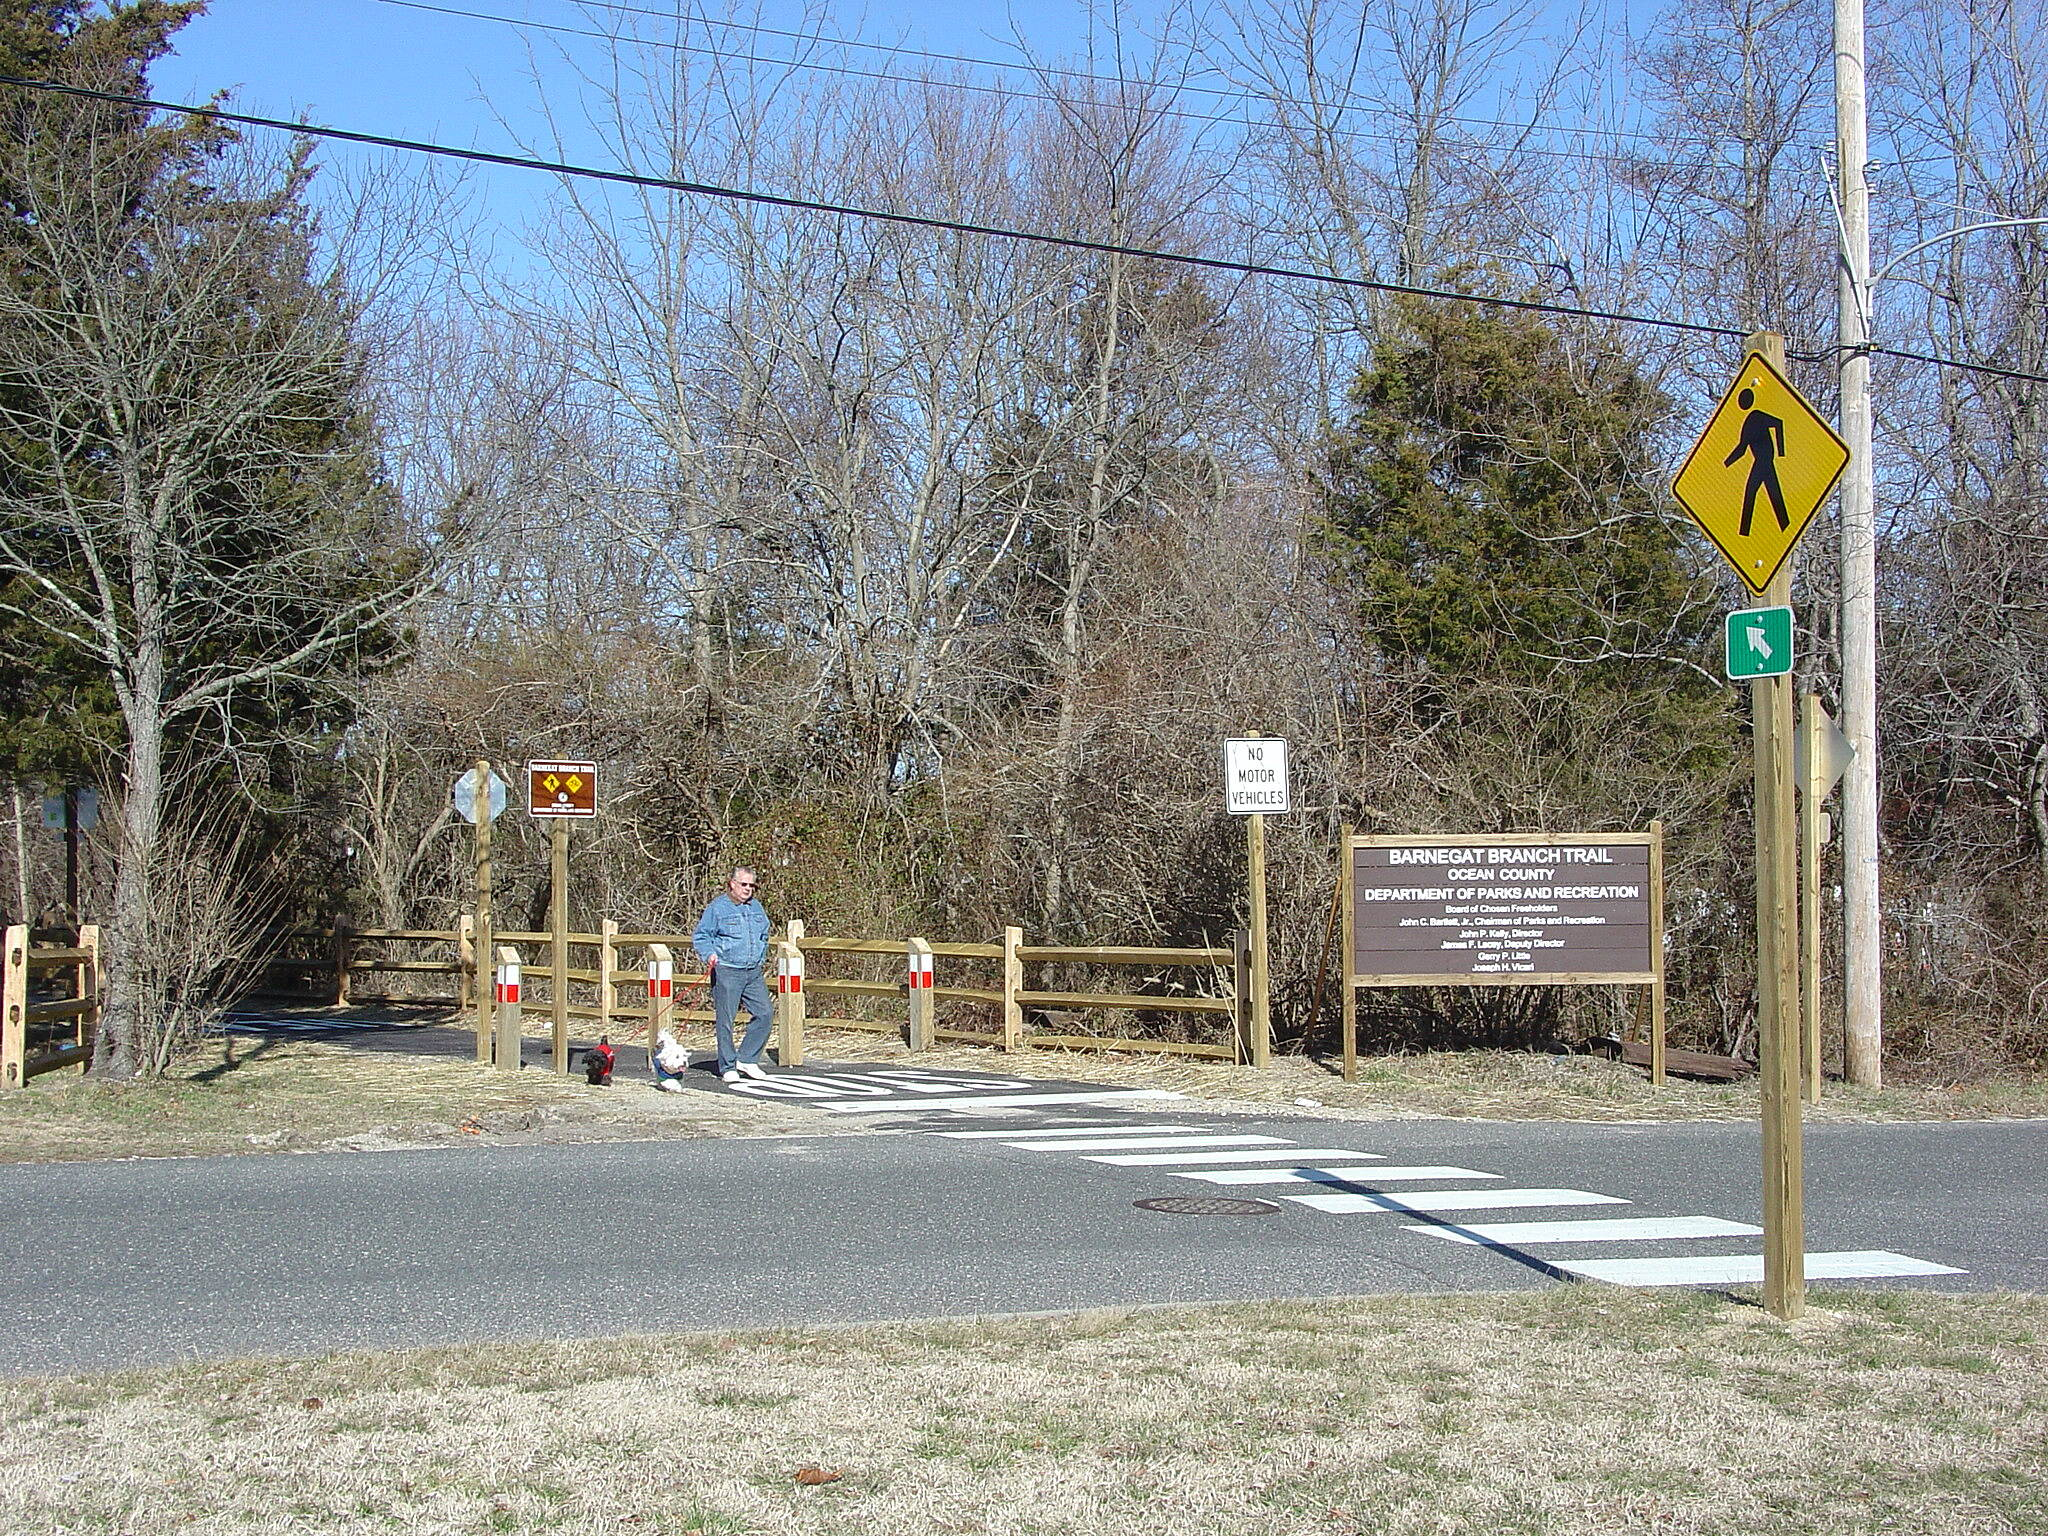 Barnegat Branch Trail Begin Trail users begin at Burr street with parking heading north only